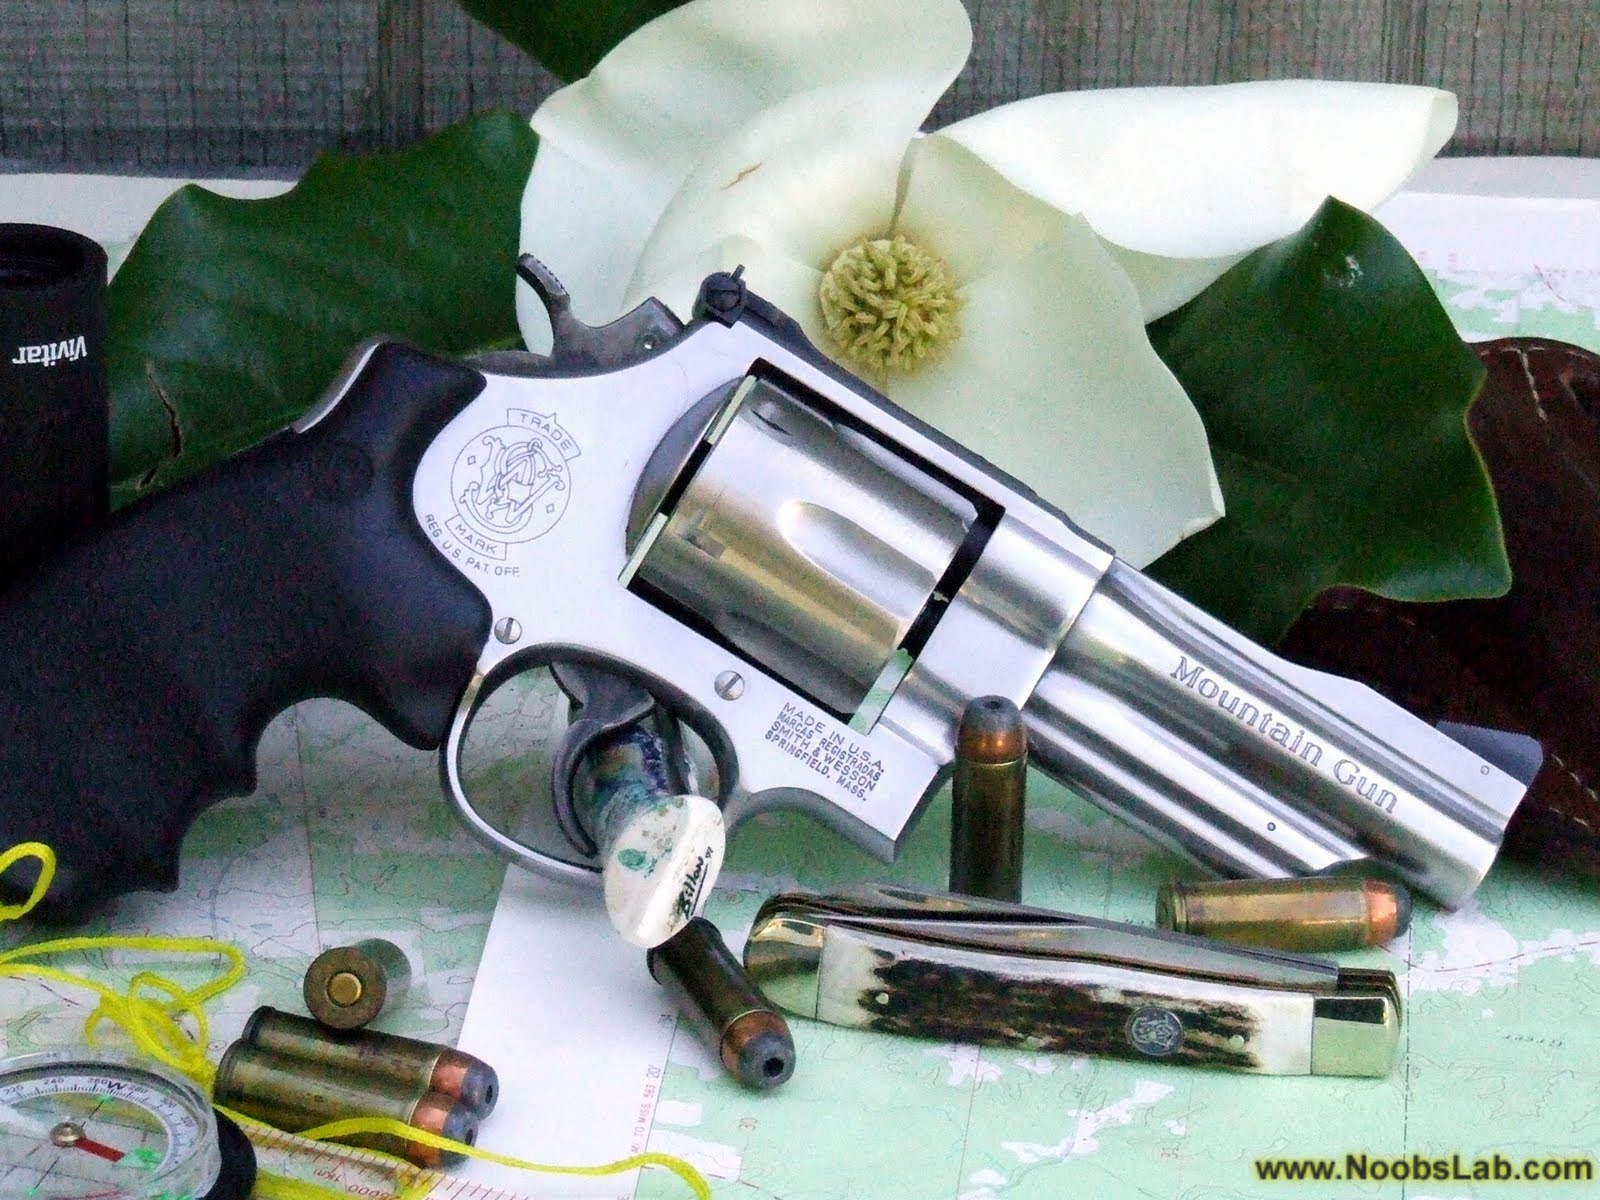 http://2.bp.blogspot.com/-0bhPv0-BQcs/TgOKLb7pUZI/AAAAAAAAAD4/MKgZzzvgySI/s1600/Smith+and+Wesson+Model+625+45+colt.jpg